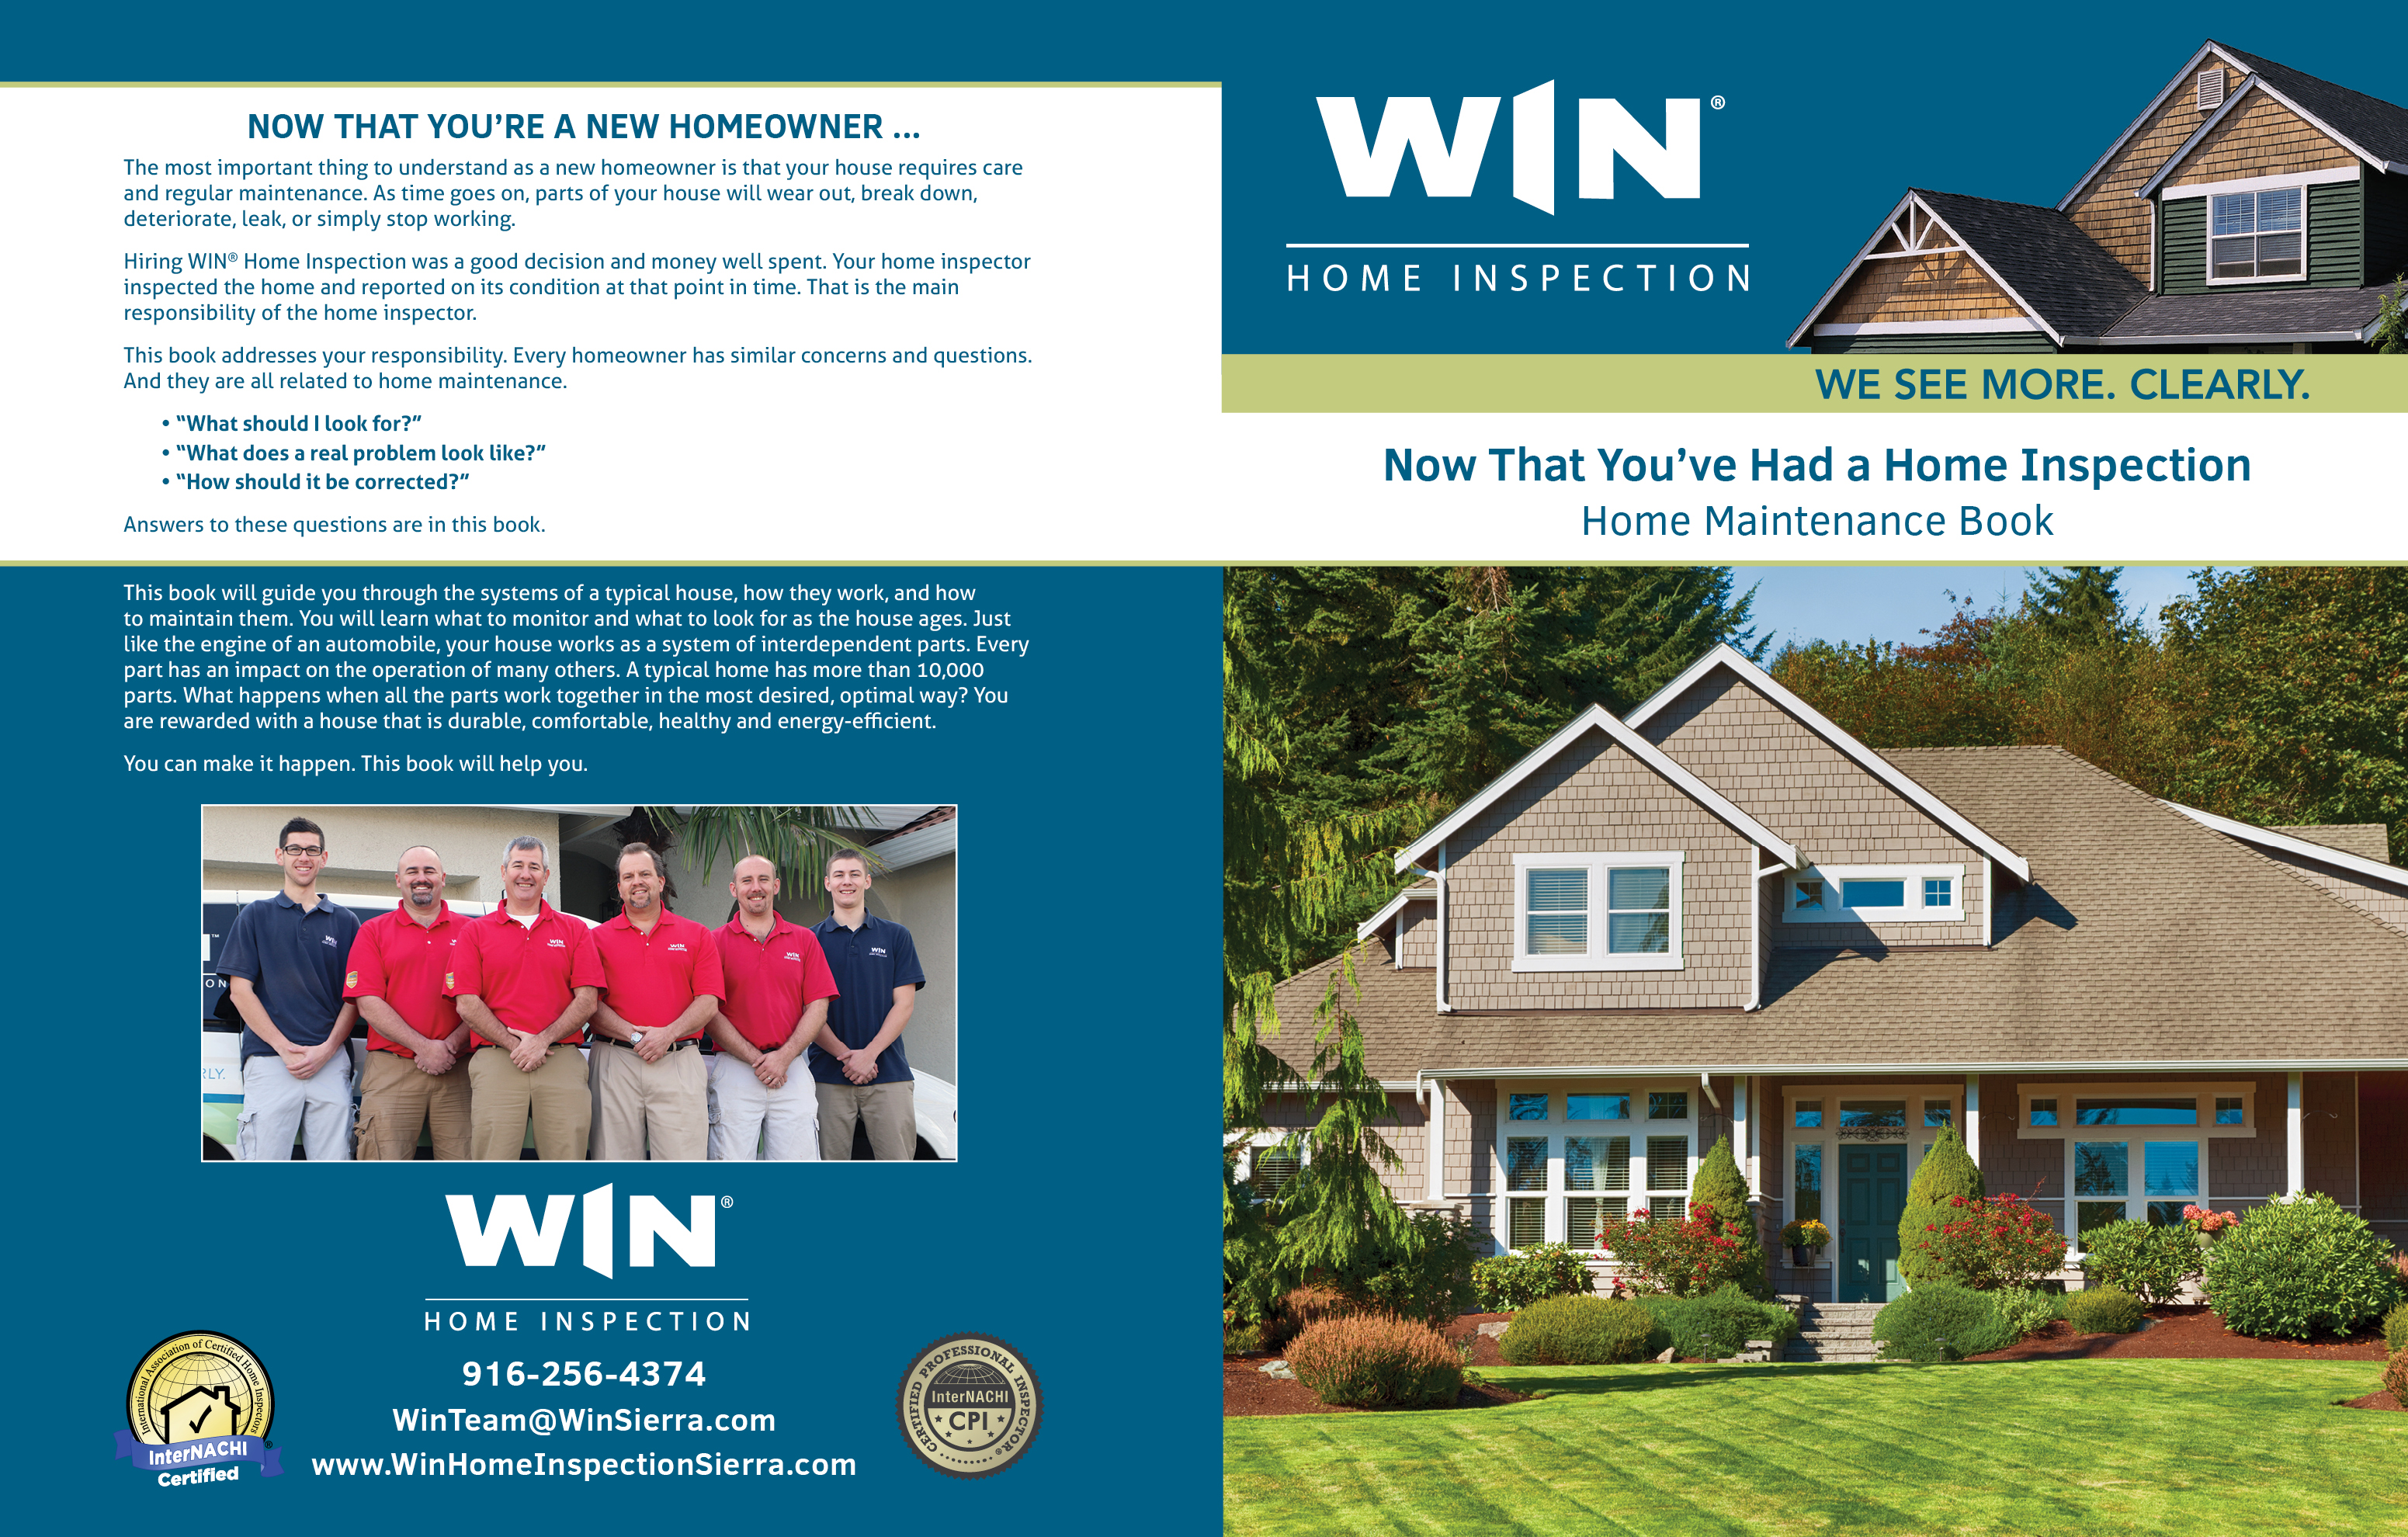 custom home maintenance book for win home inspection - inspection gallery